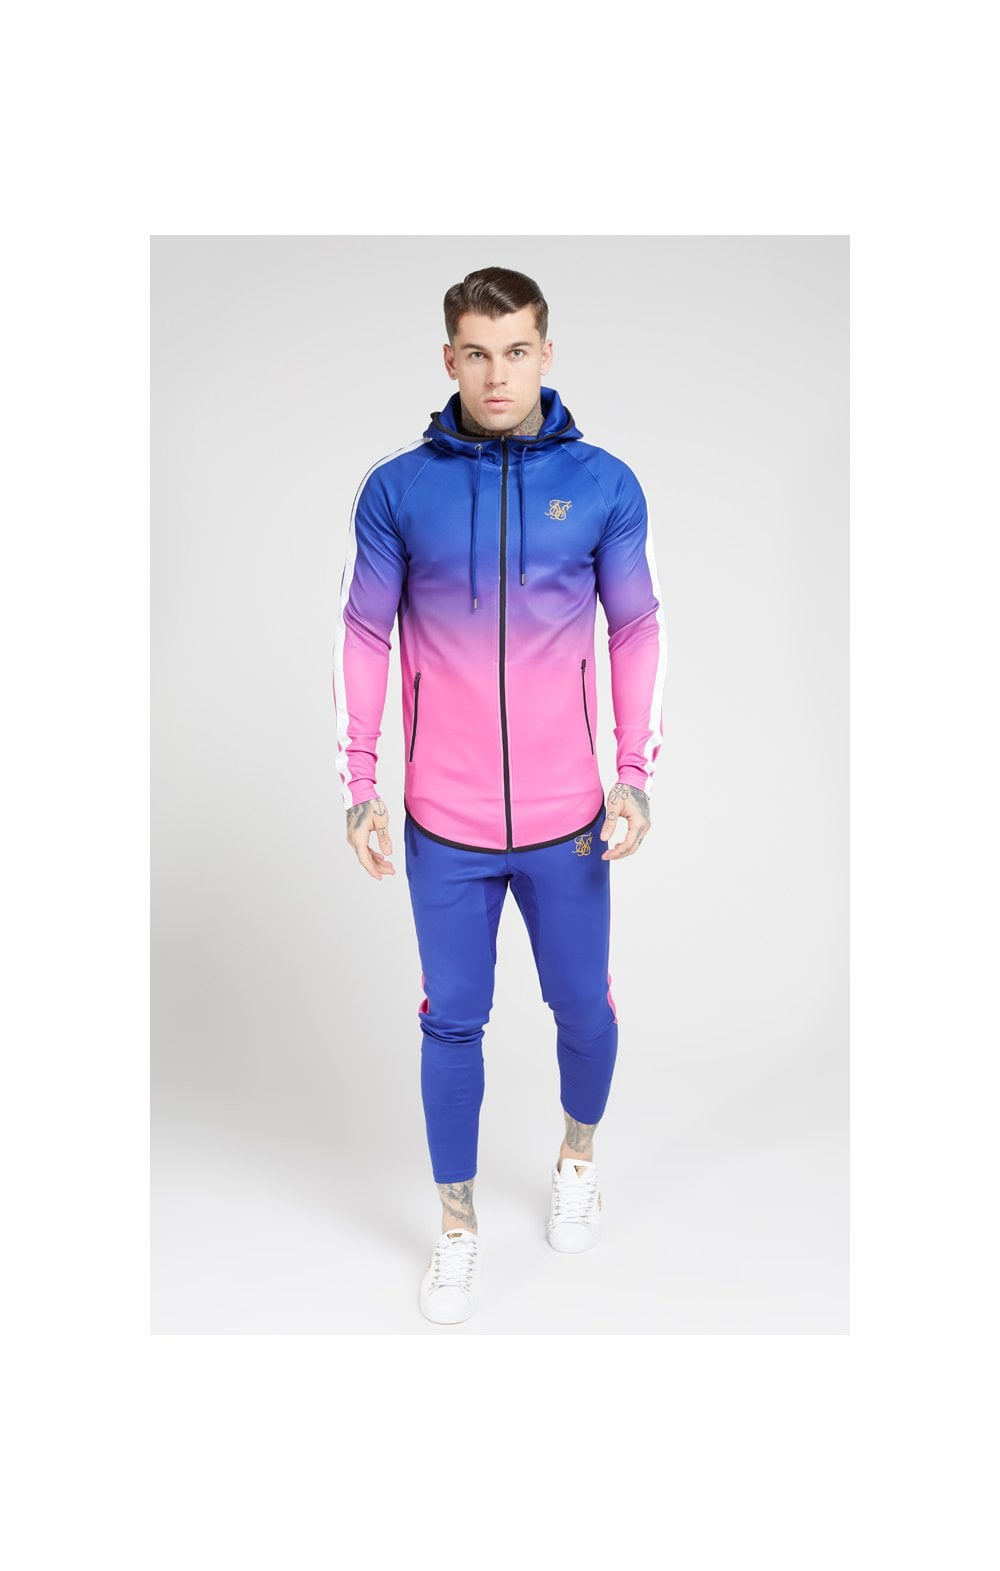 SikSilk Athlete Fade Zip Through Hoodie – Blue Neon (2)